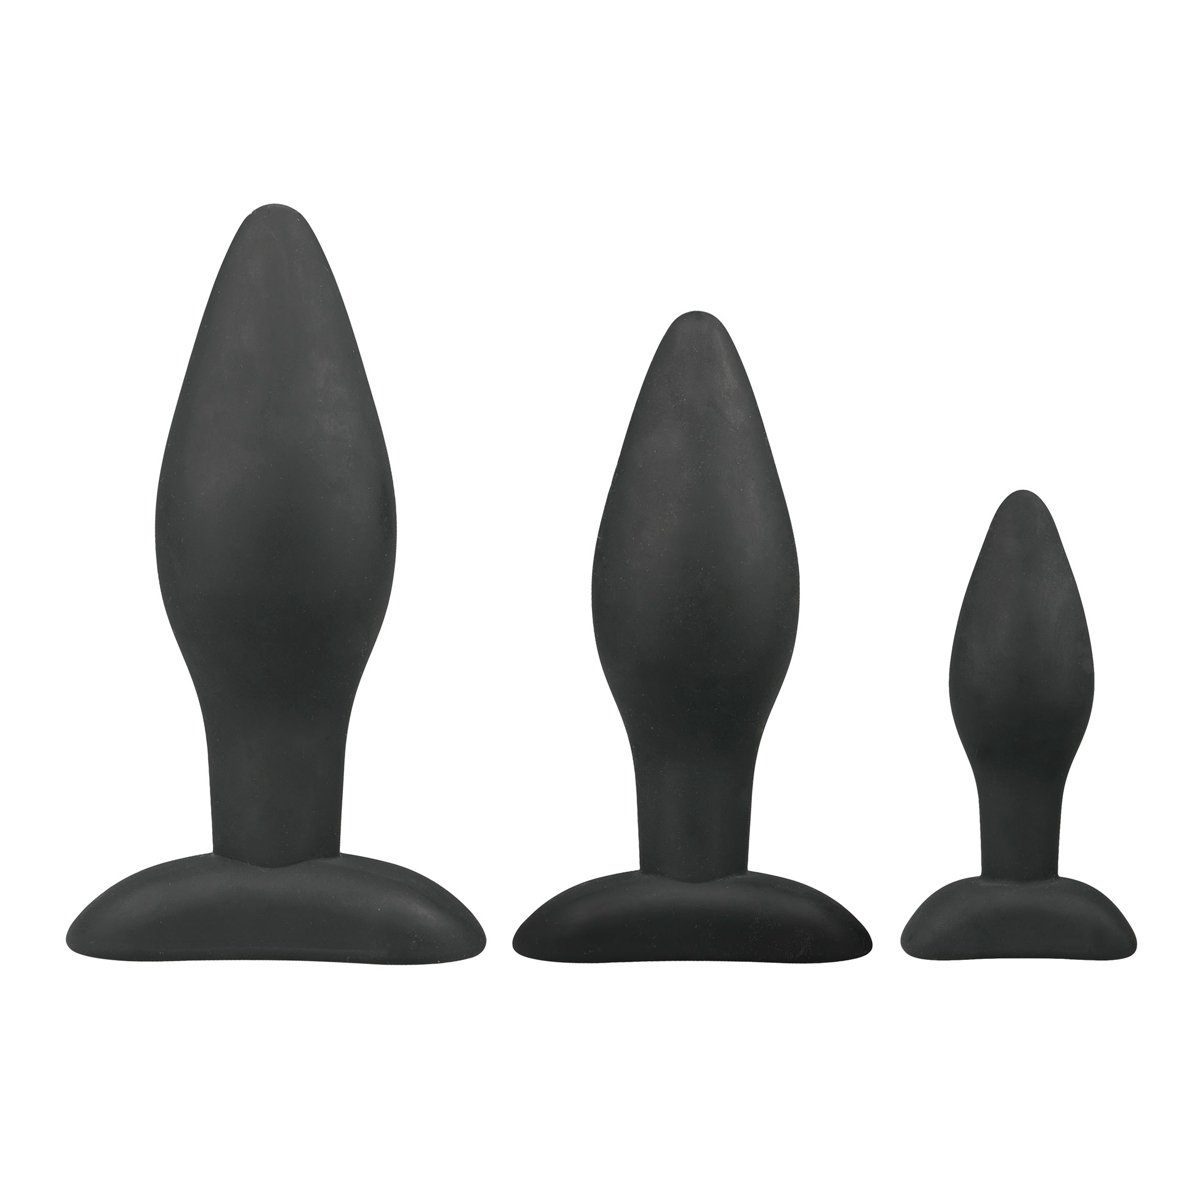 EasyToys Anal Collection Buttplug Set, 3 Pieces, Black Analtoys, Buttplug Training Set